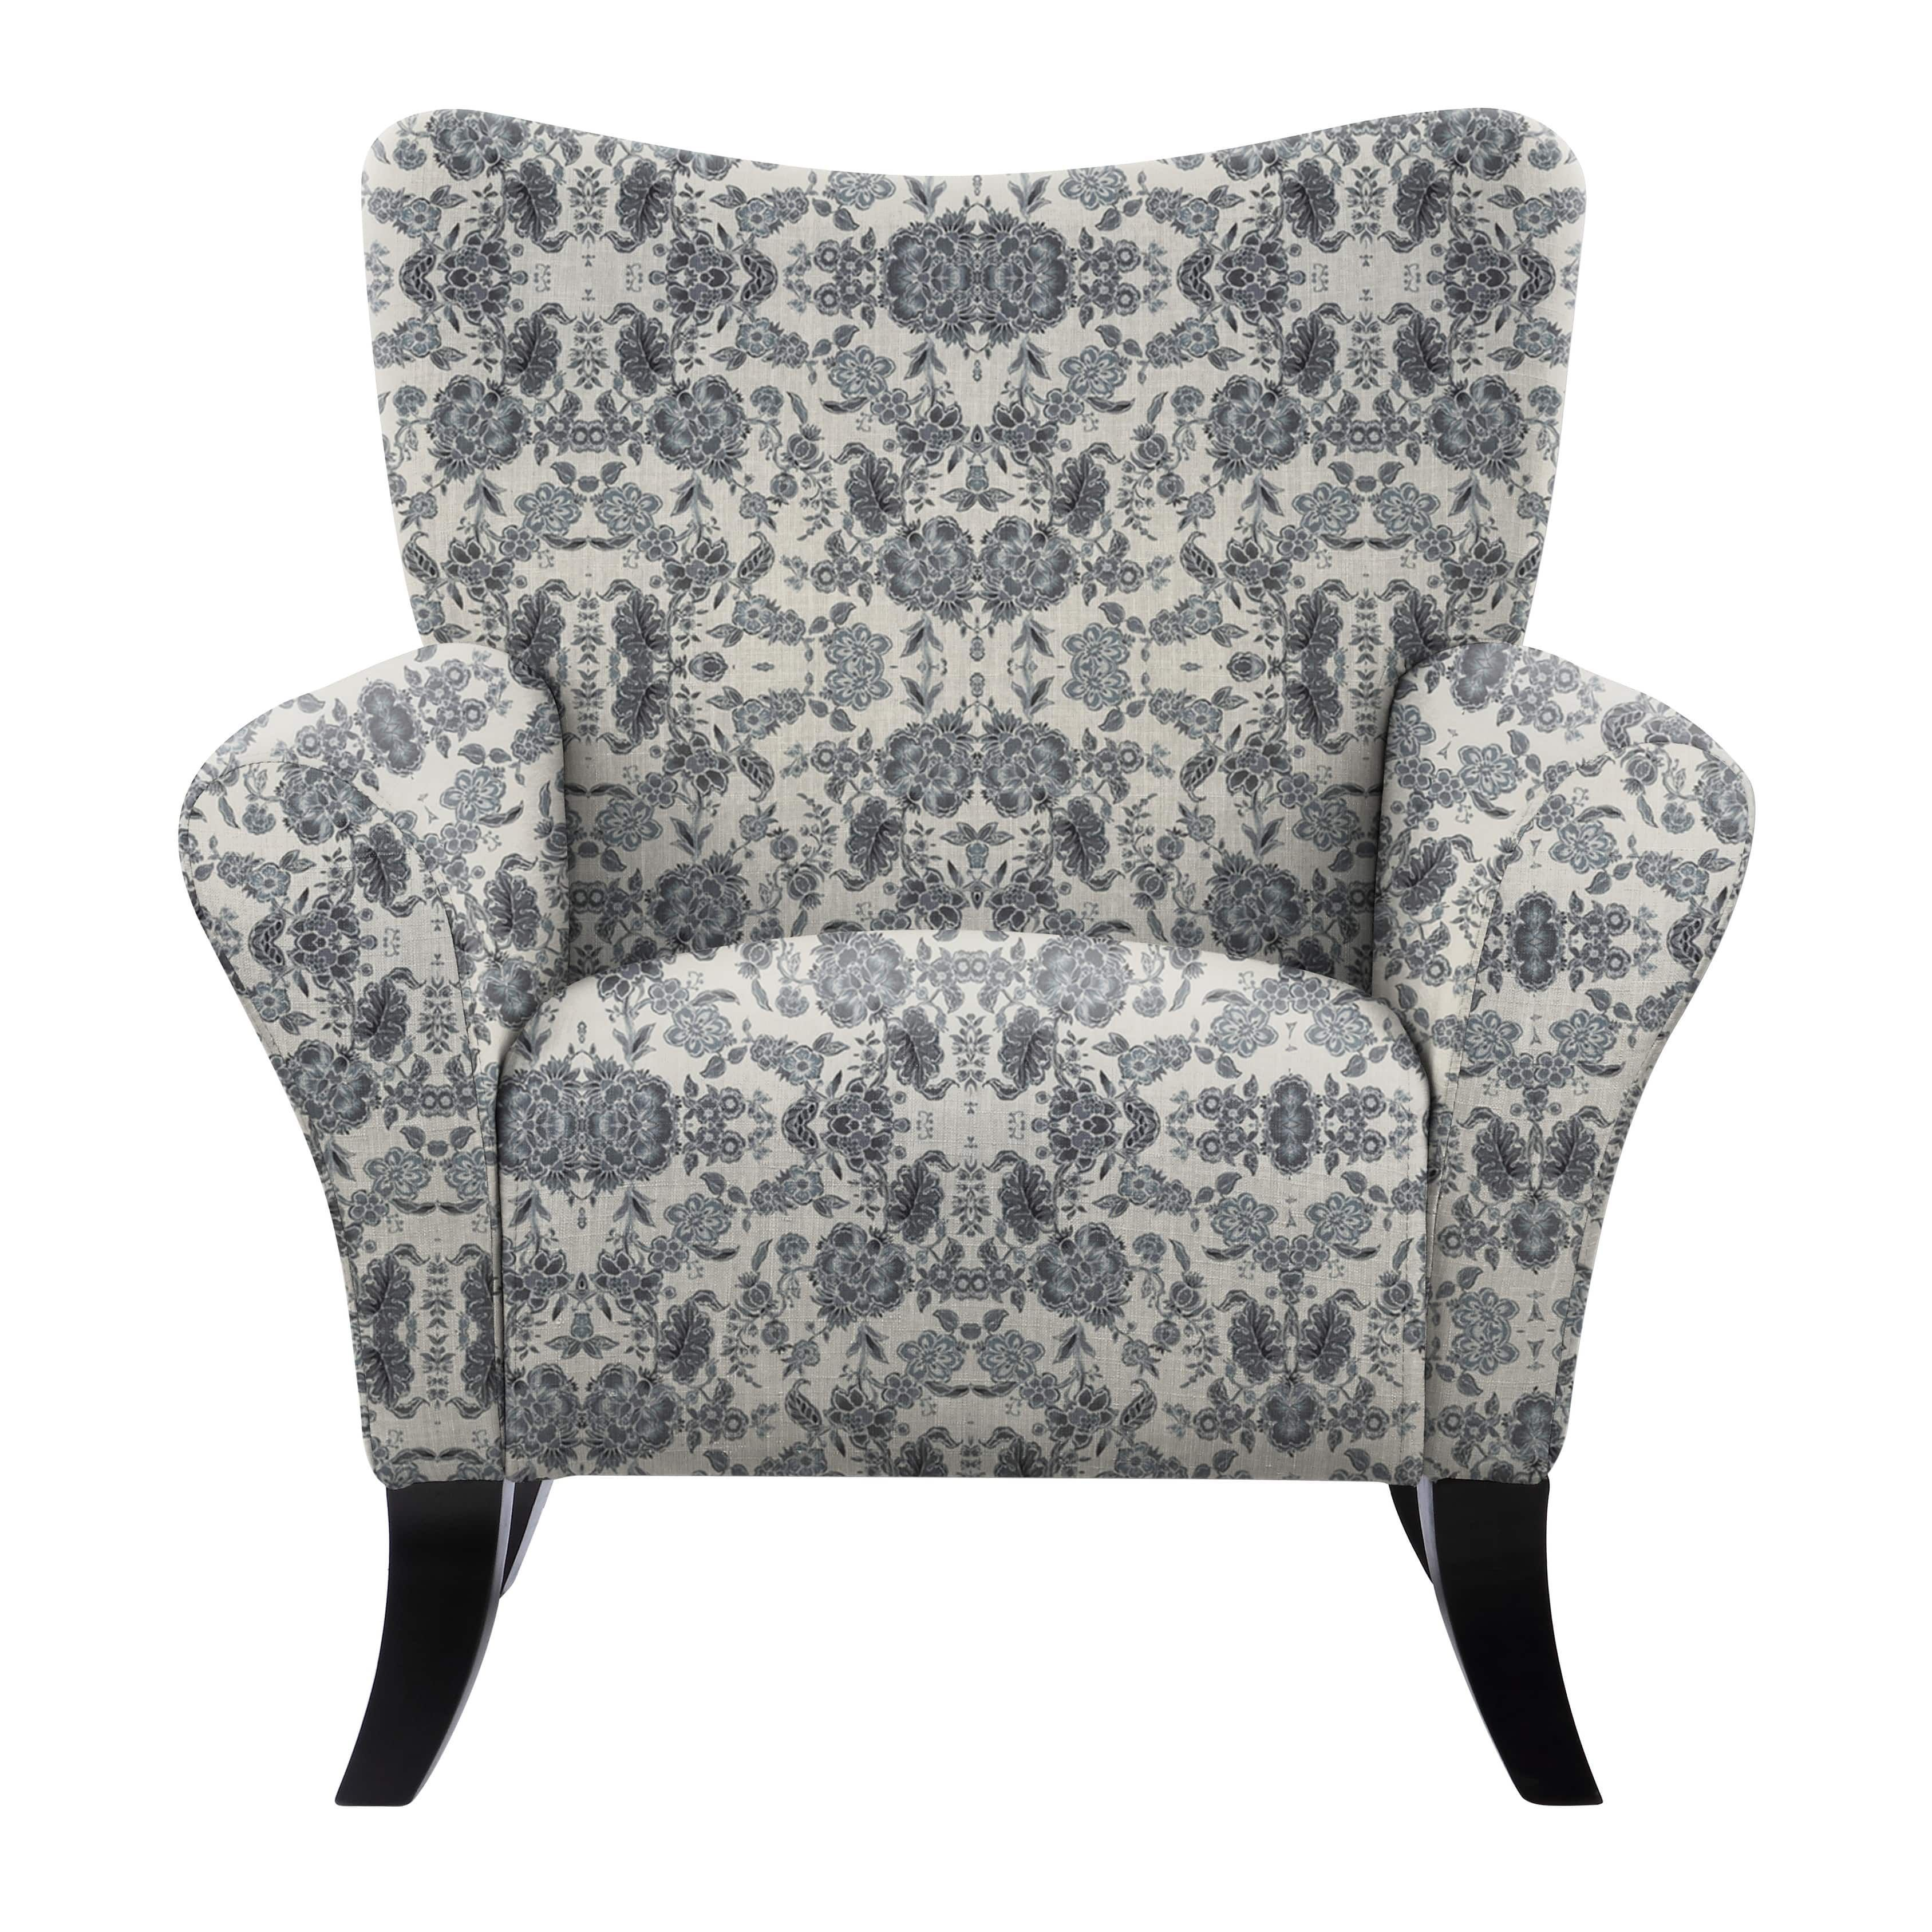 Blue Patterned Chair Natalia Mavier Blue Floral Fabric And Wood Accent Chair Beige